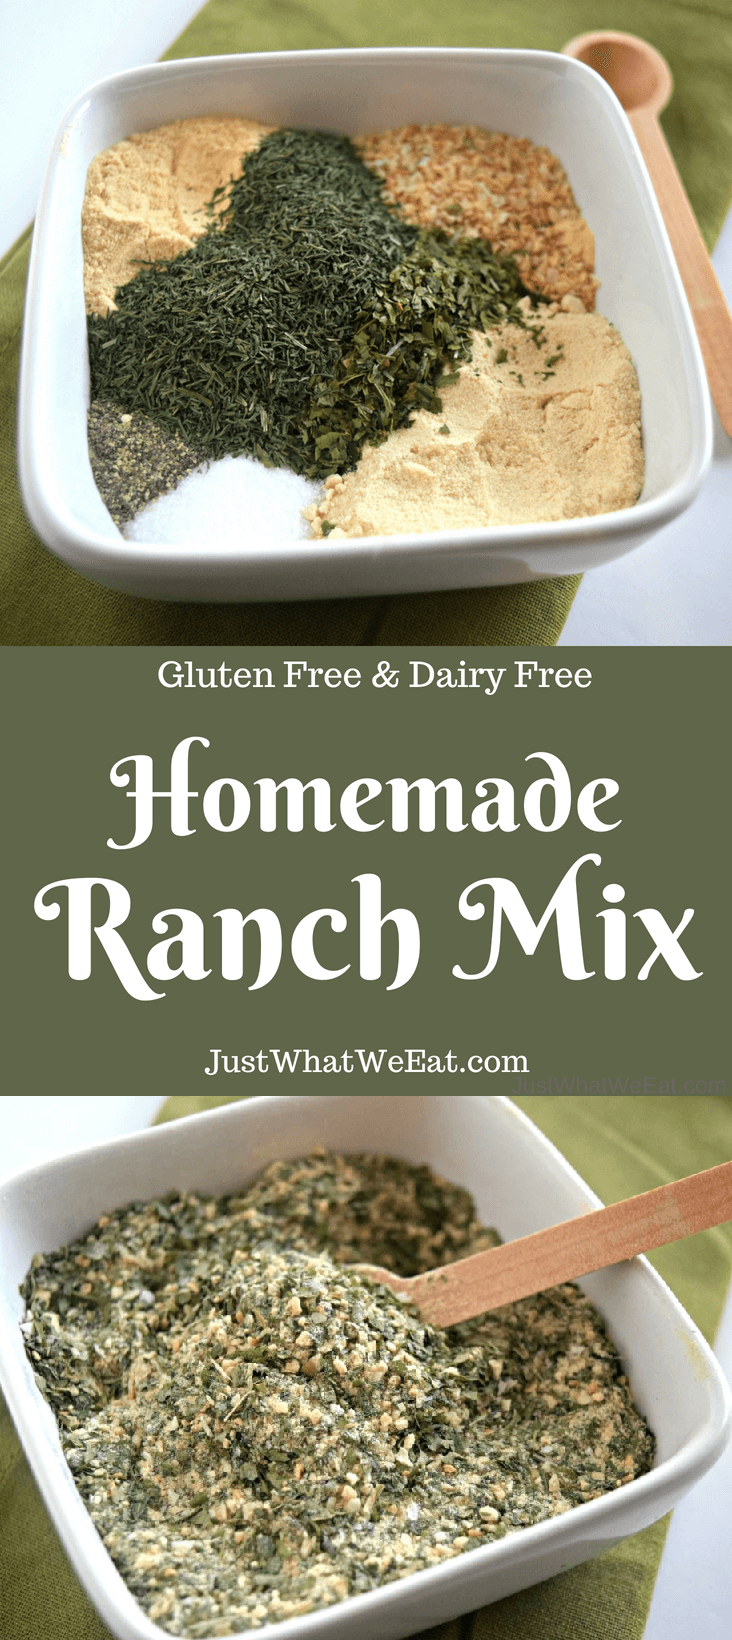 Homemade Ranch Mix - Gluten Free & Dairy Free